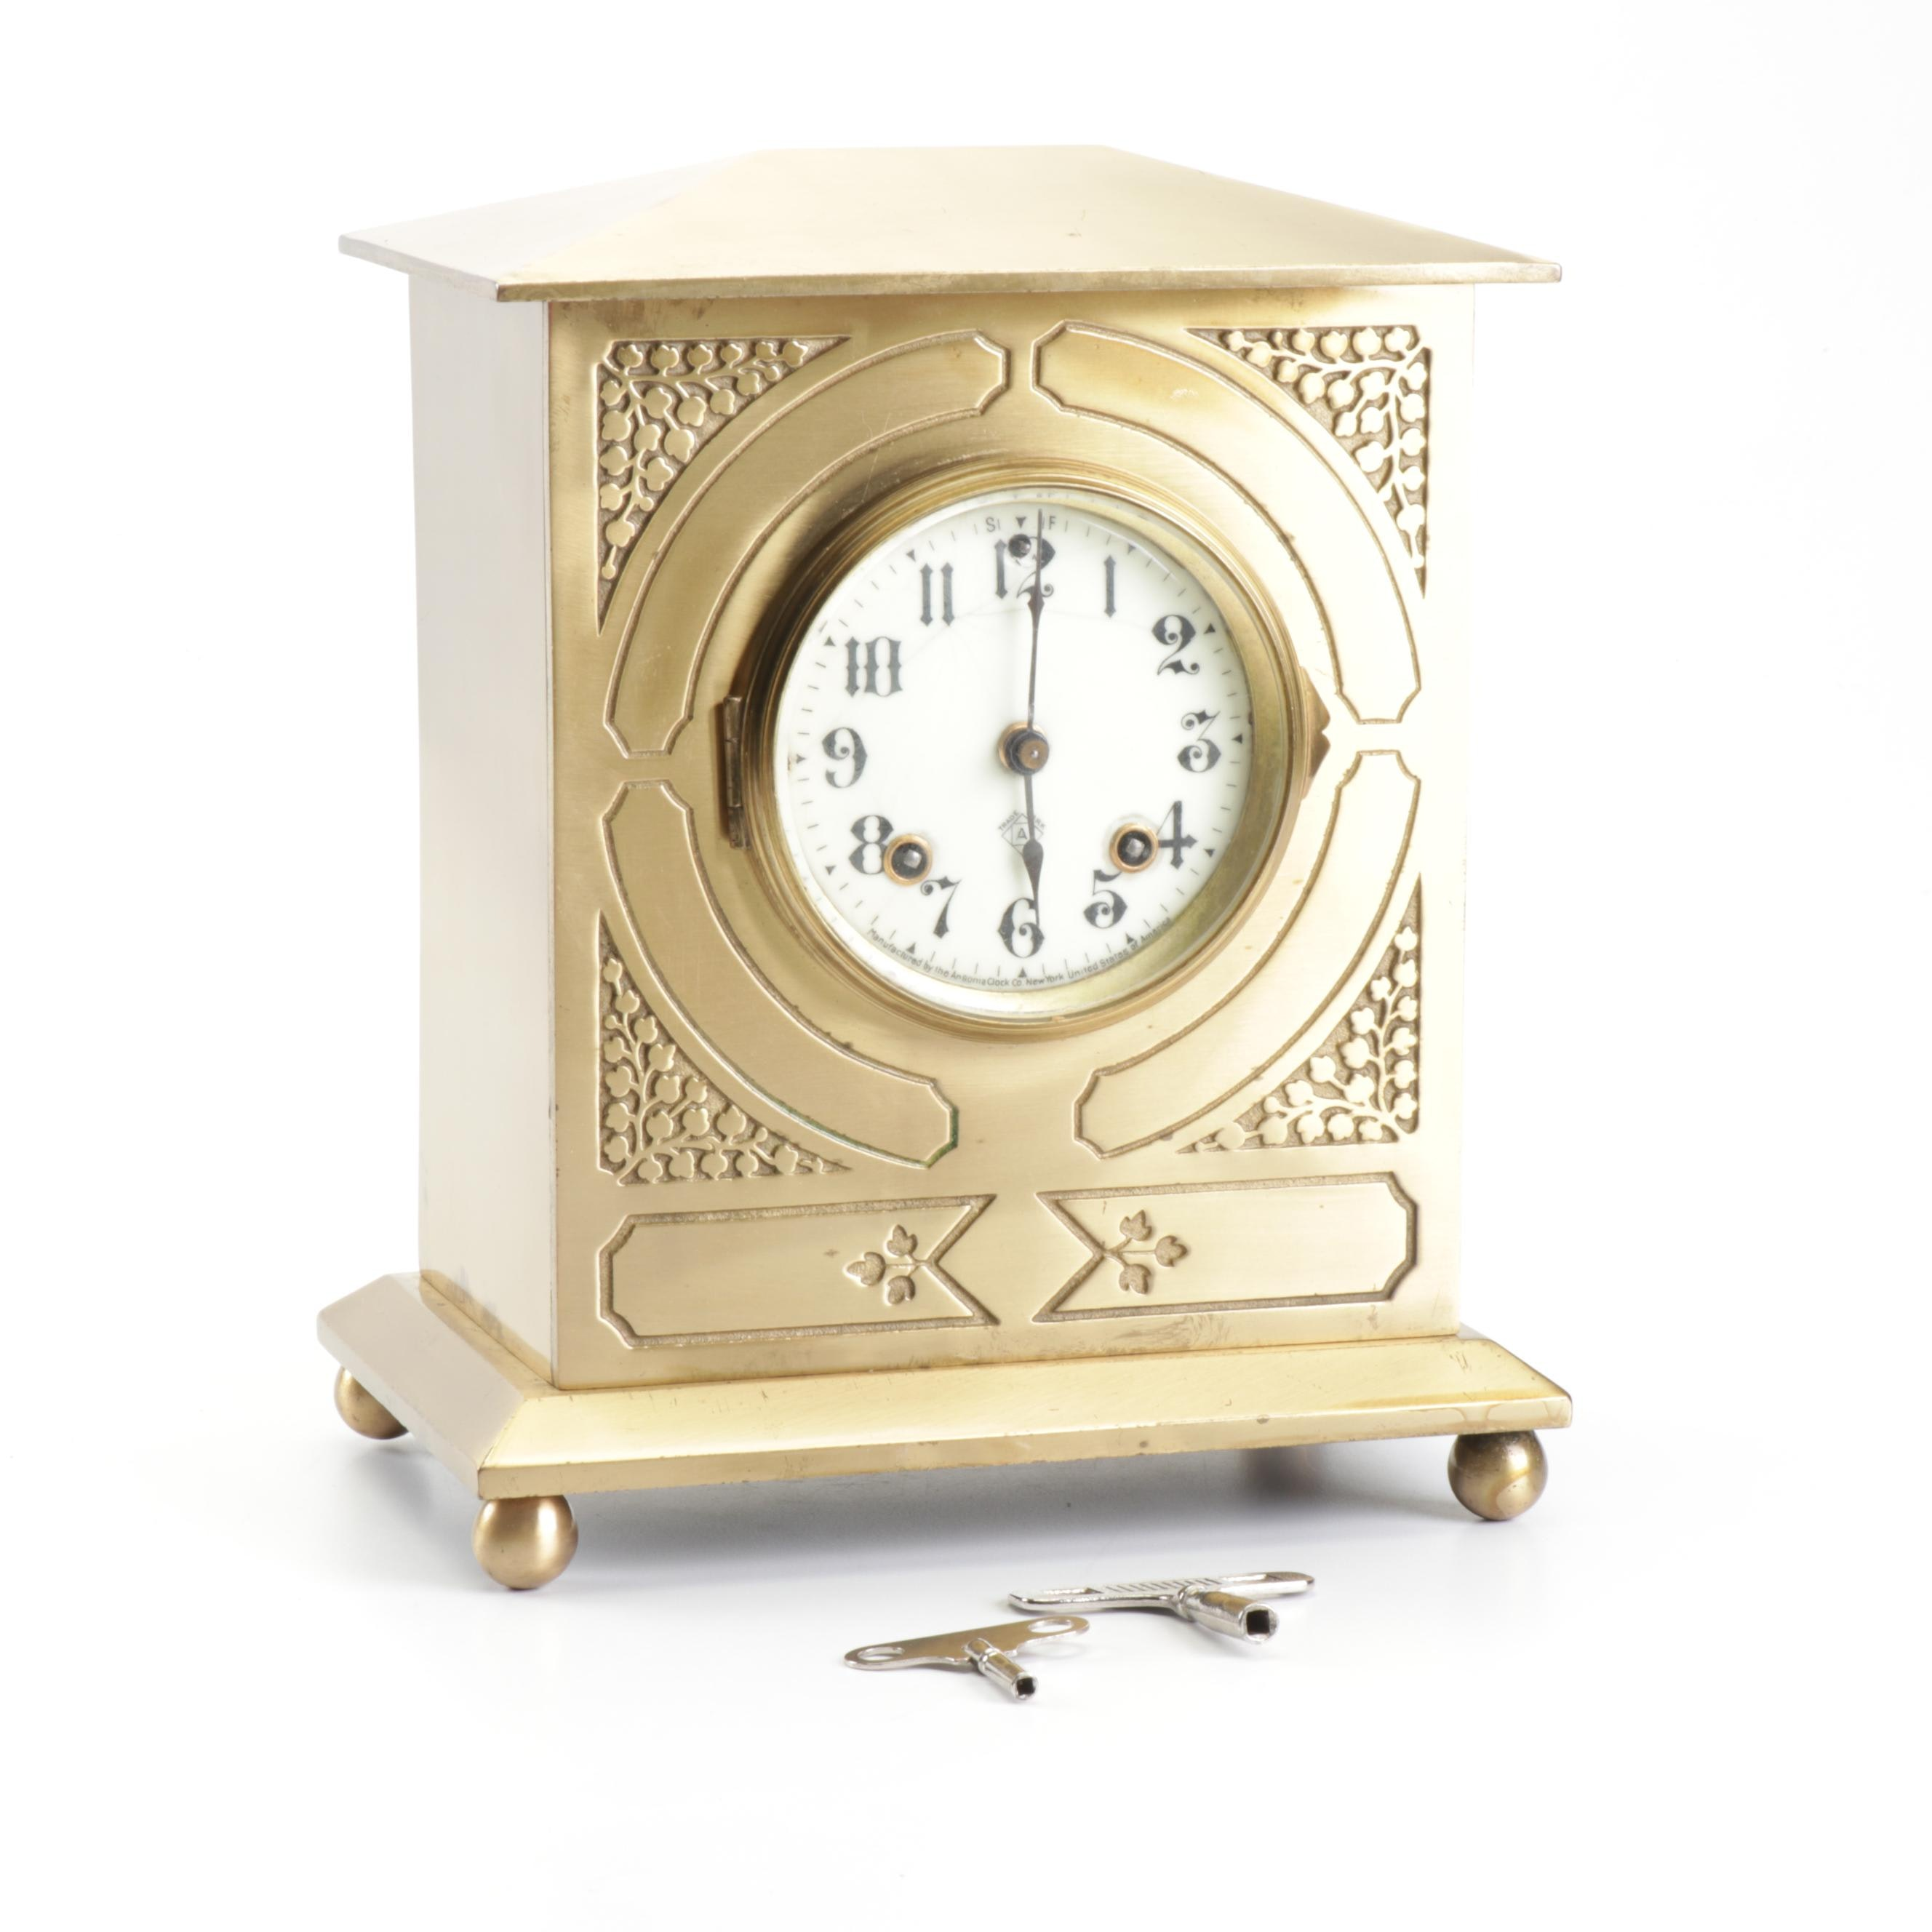 Ansonia Brass Case Mantel Clock with Porcelain Face